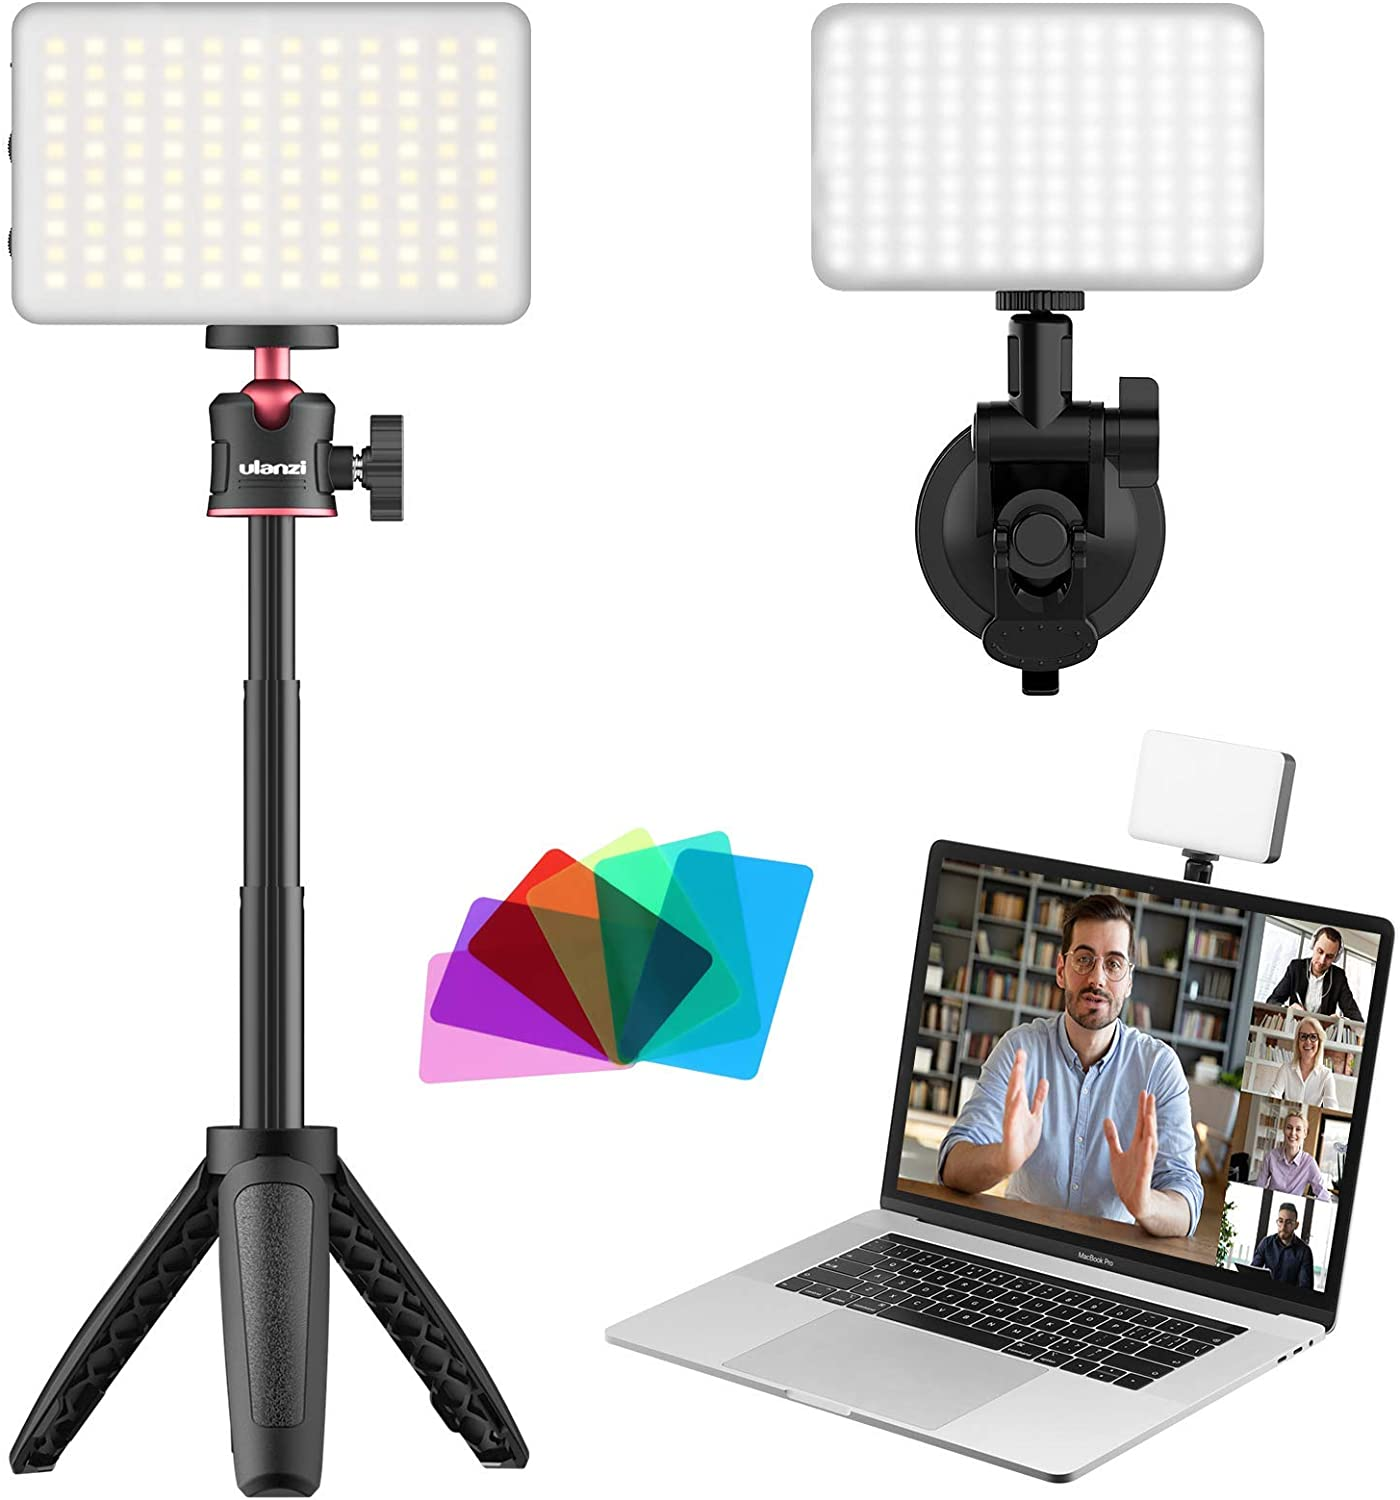 Video Conference Lighting Kit, LED Video Tripod Light for Laptop Computer Video Conferencing | Video Recording | Remote Working | Zoom Meeting | Self Broadcasting and Live Streaming